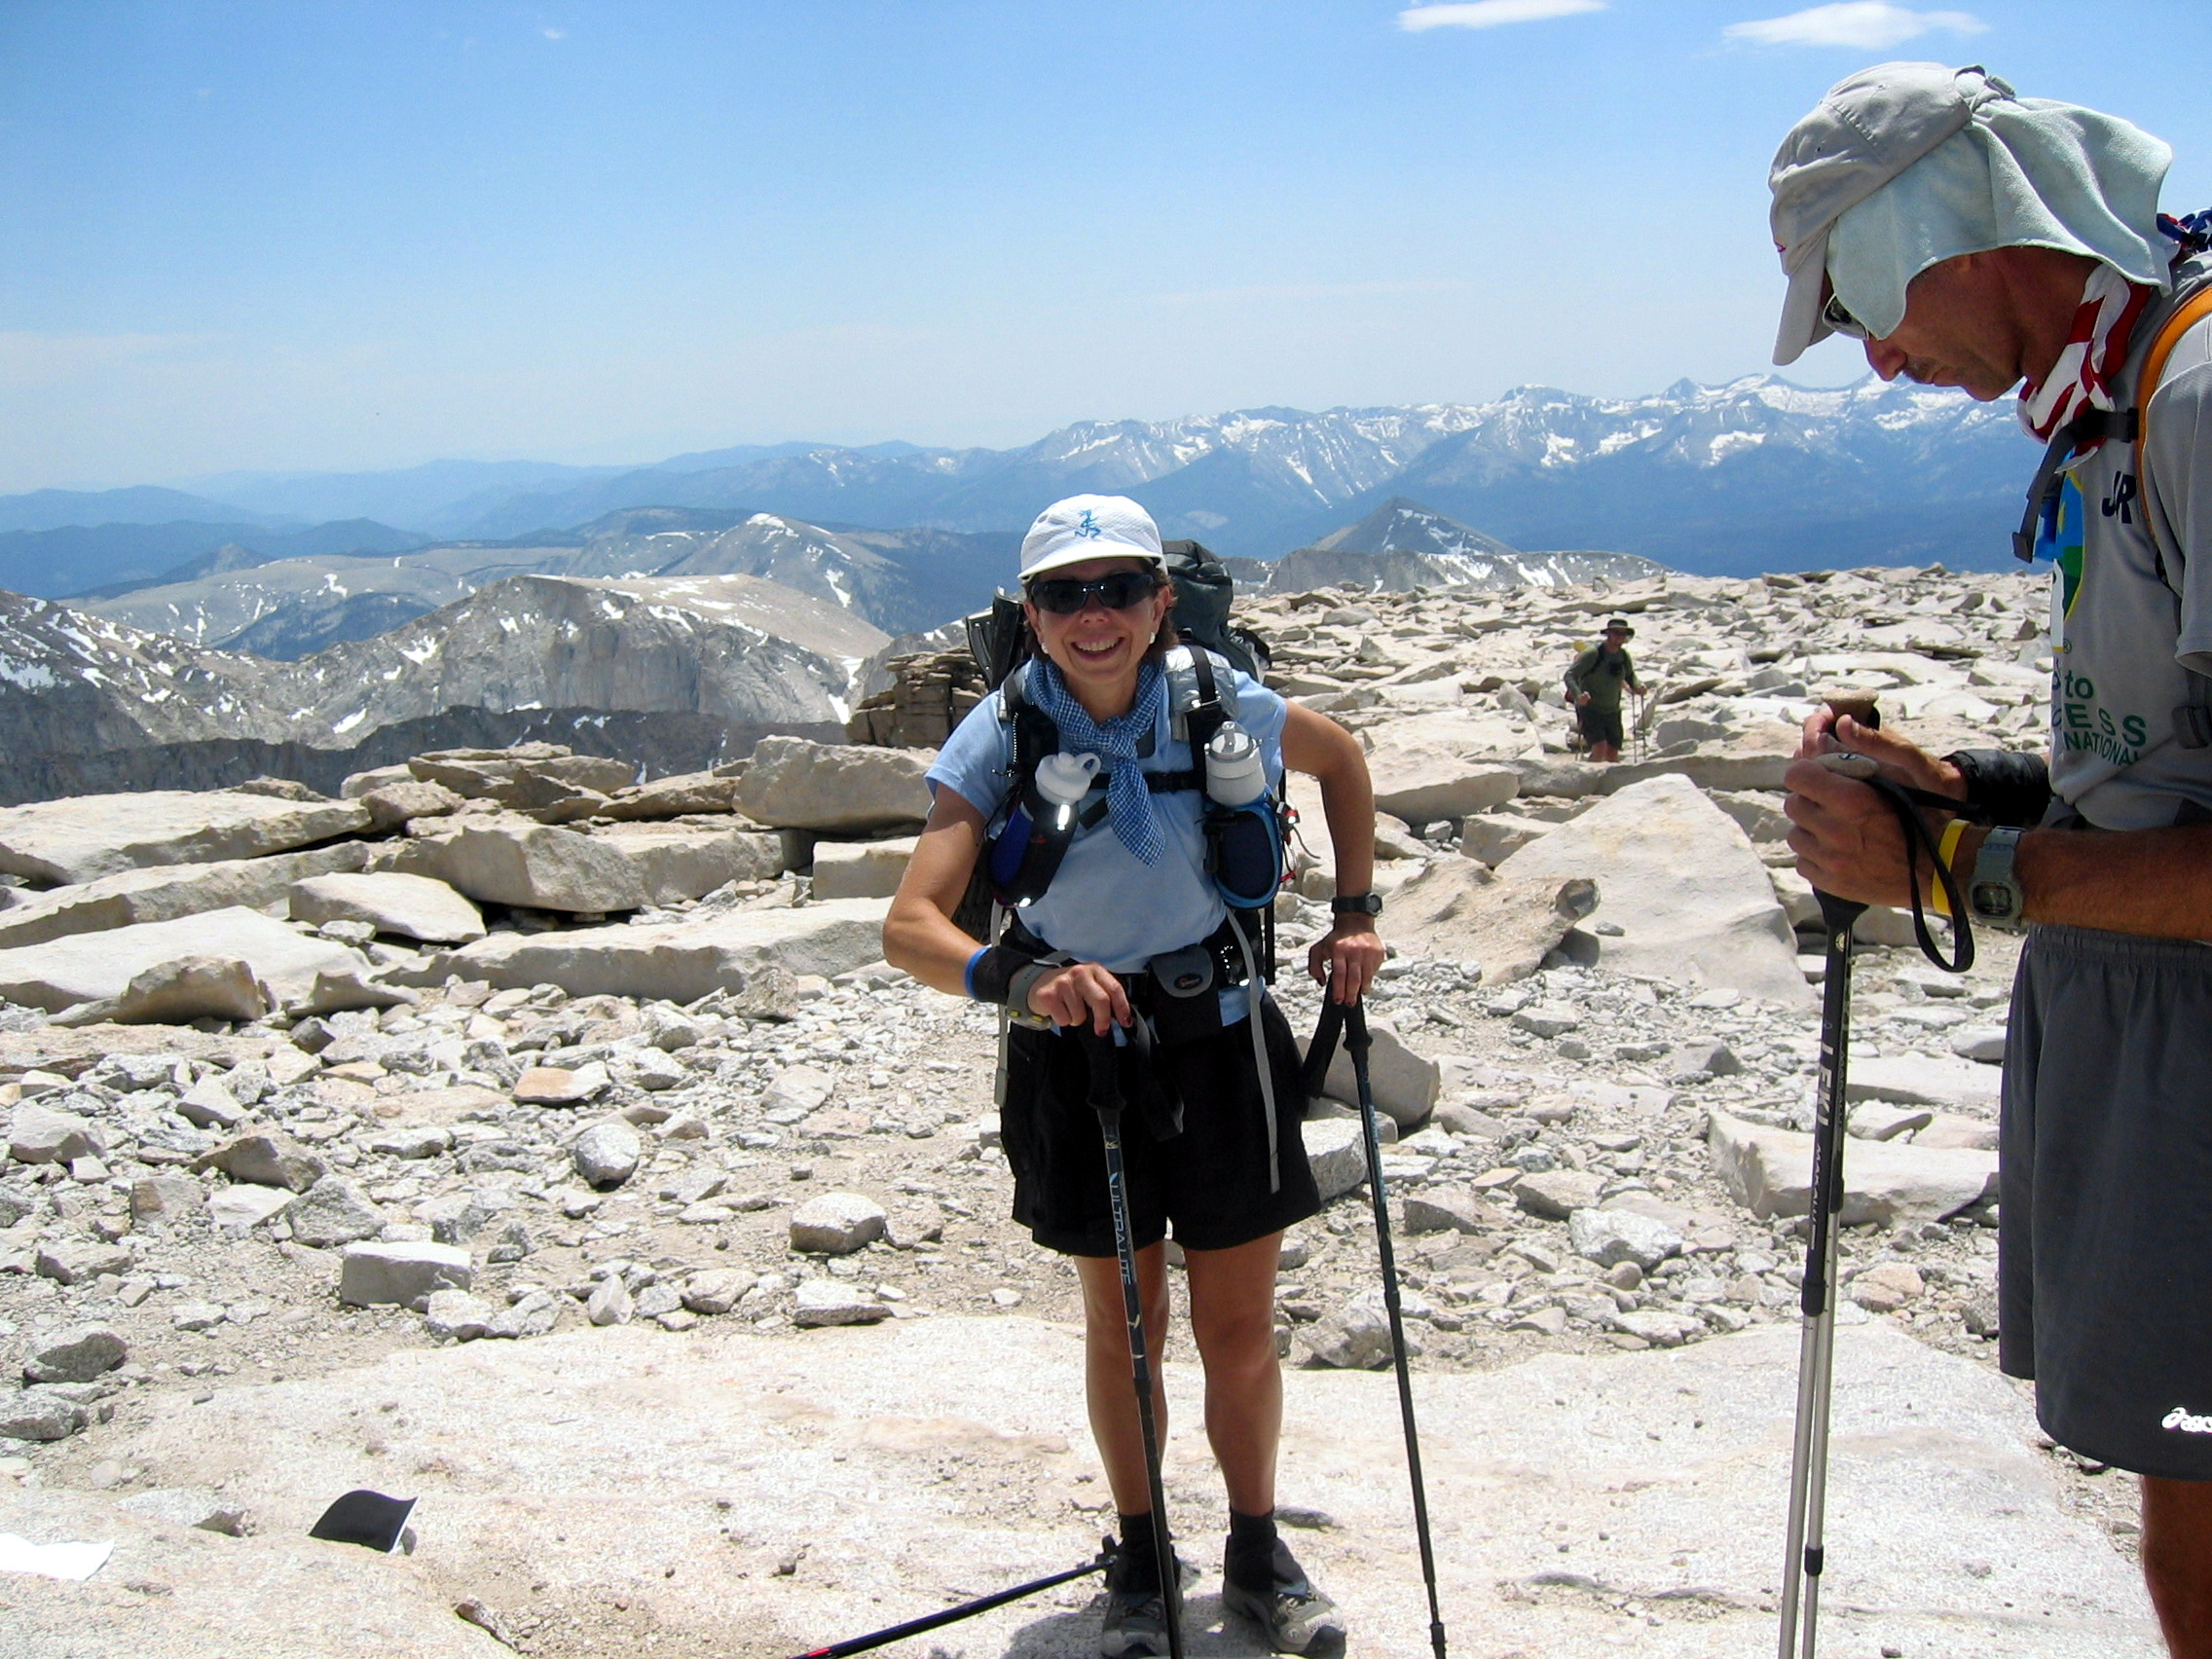 Linda McFadden finished Badwater in 40 hrs, and is heading toward Yosemite with JR after her summit